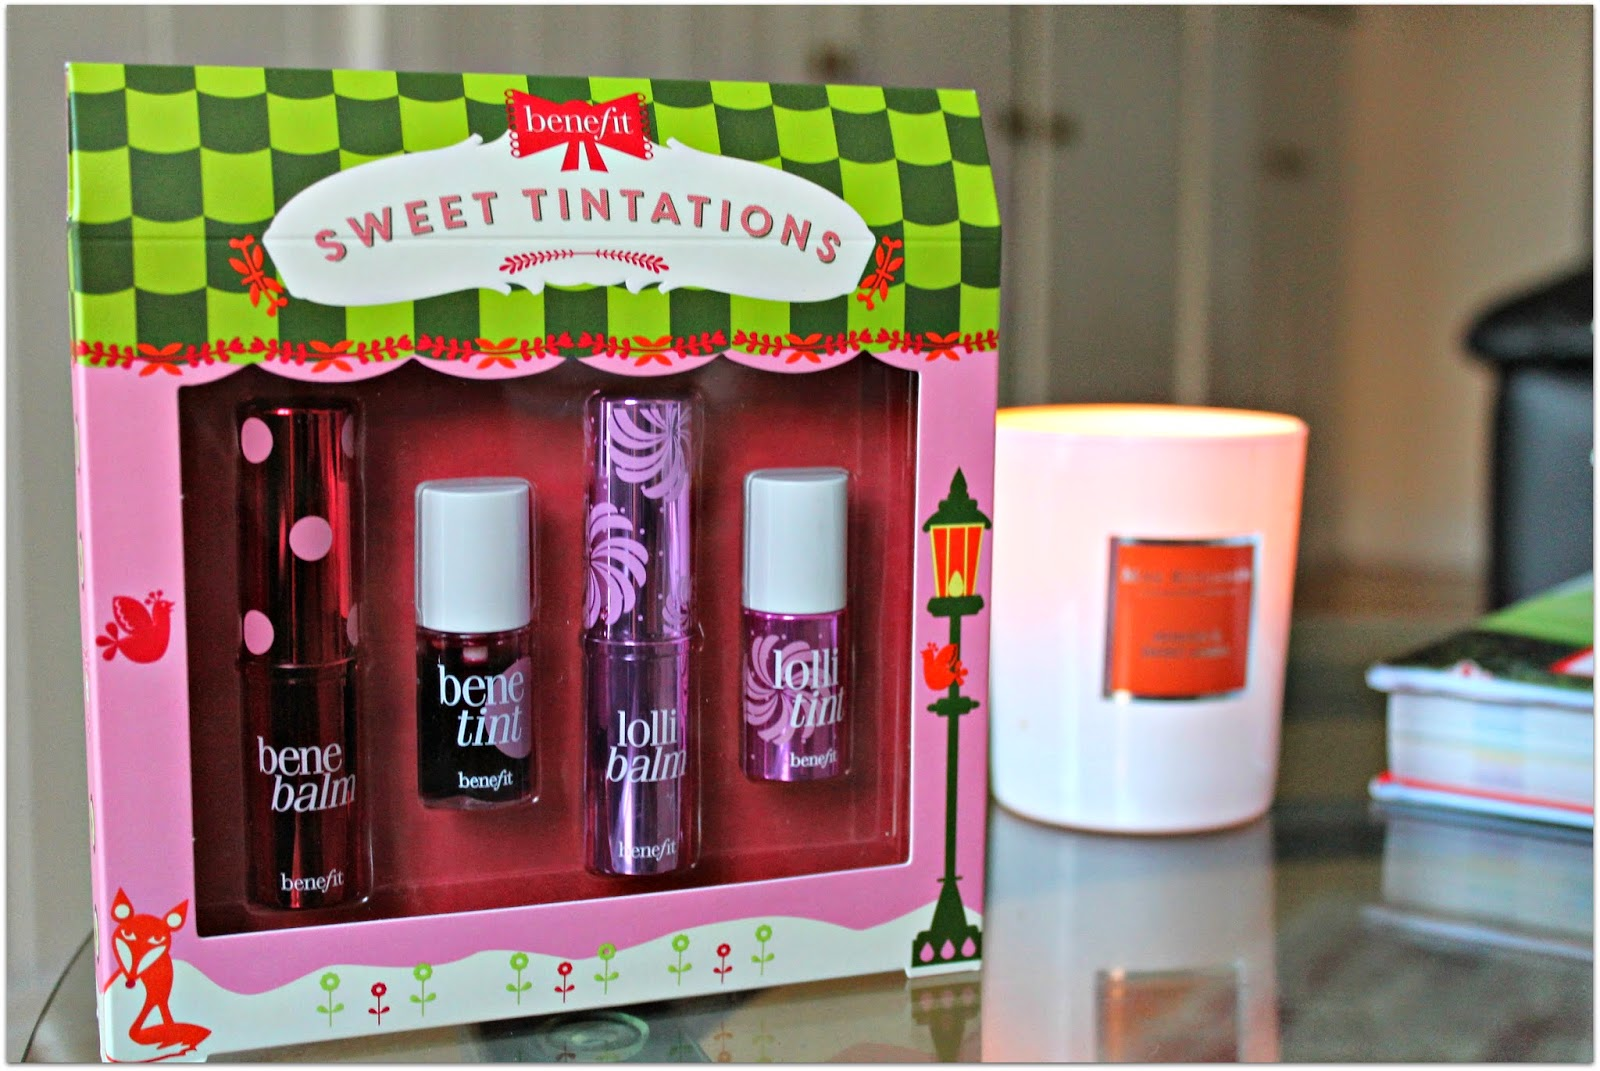 Benefit Sweet Tintations